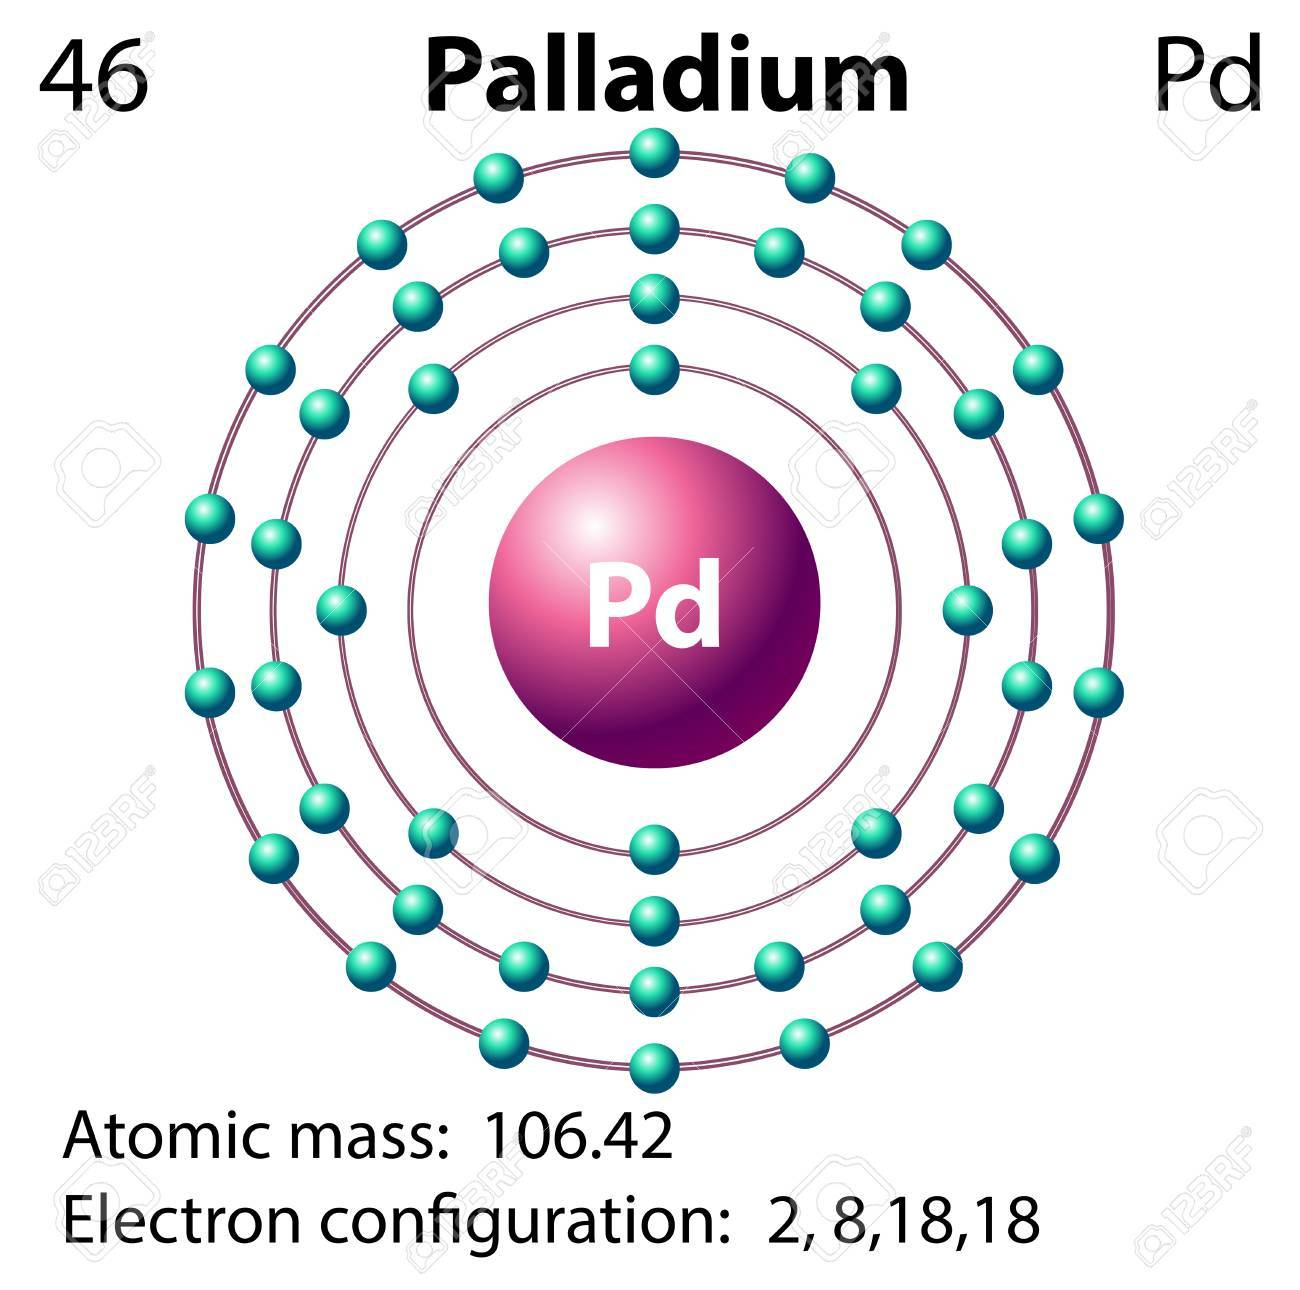 Atomic Diagram Of Palladium Library Wiring Oxygen Atom Structure Stock Photo Symbol And Electron For Illustration Royalty Free Rh 123rf Com Carbon